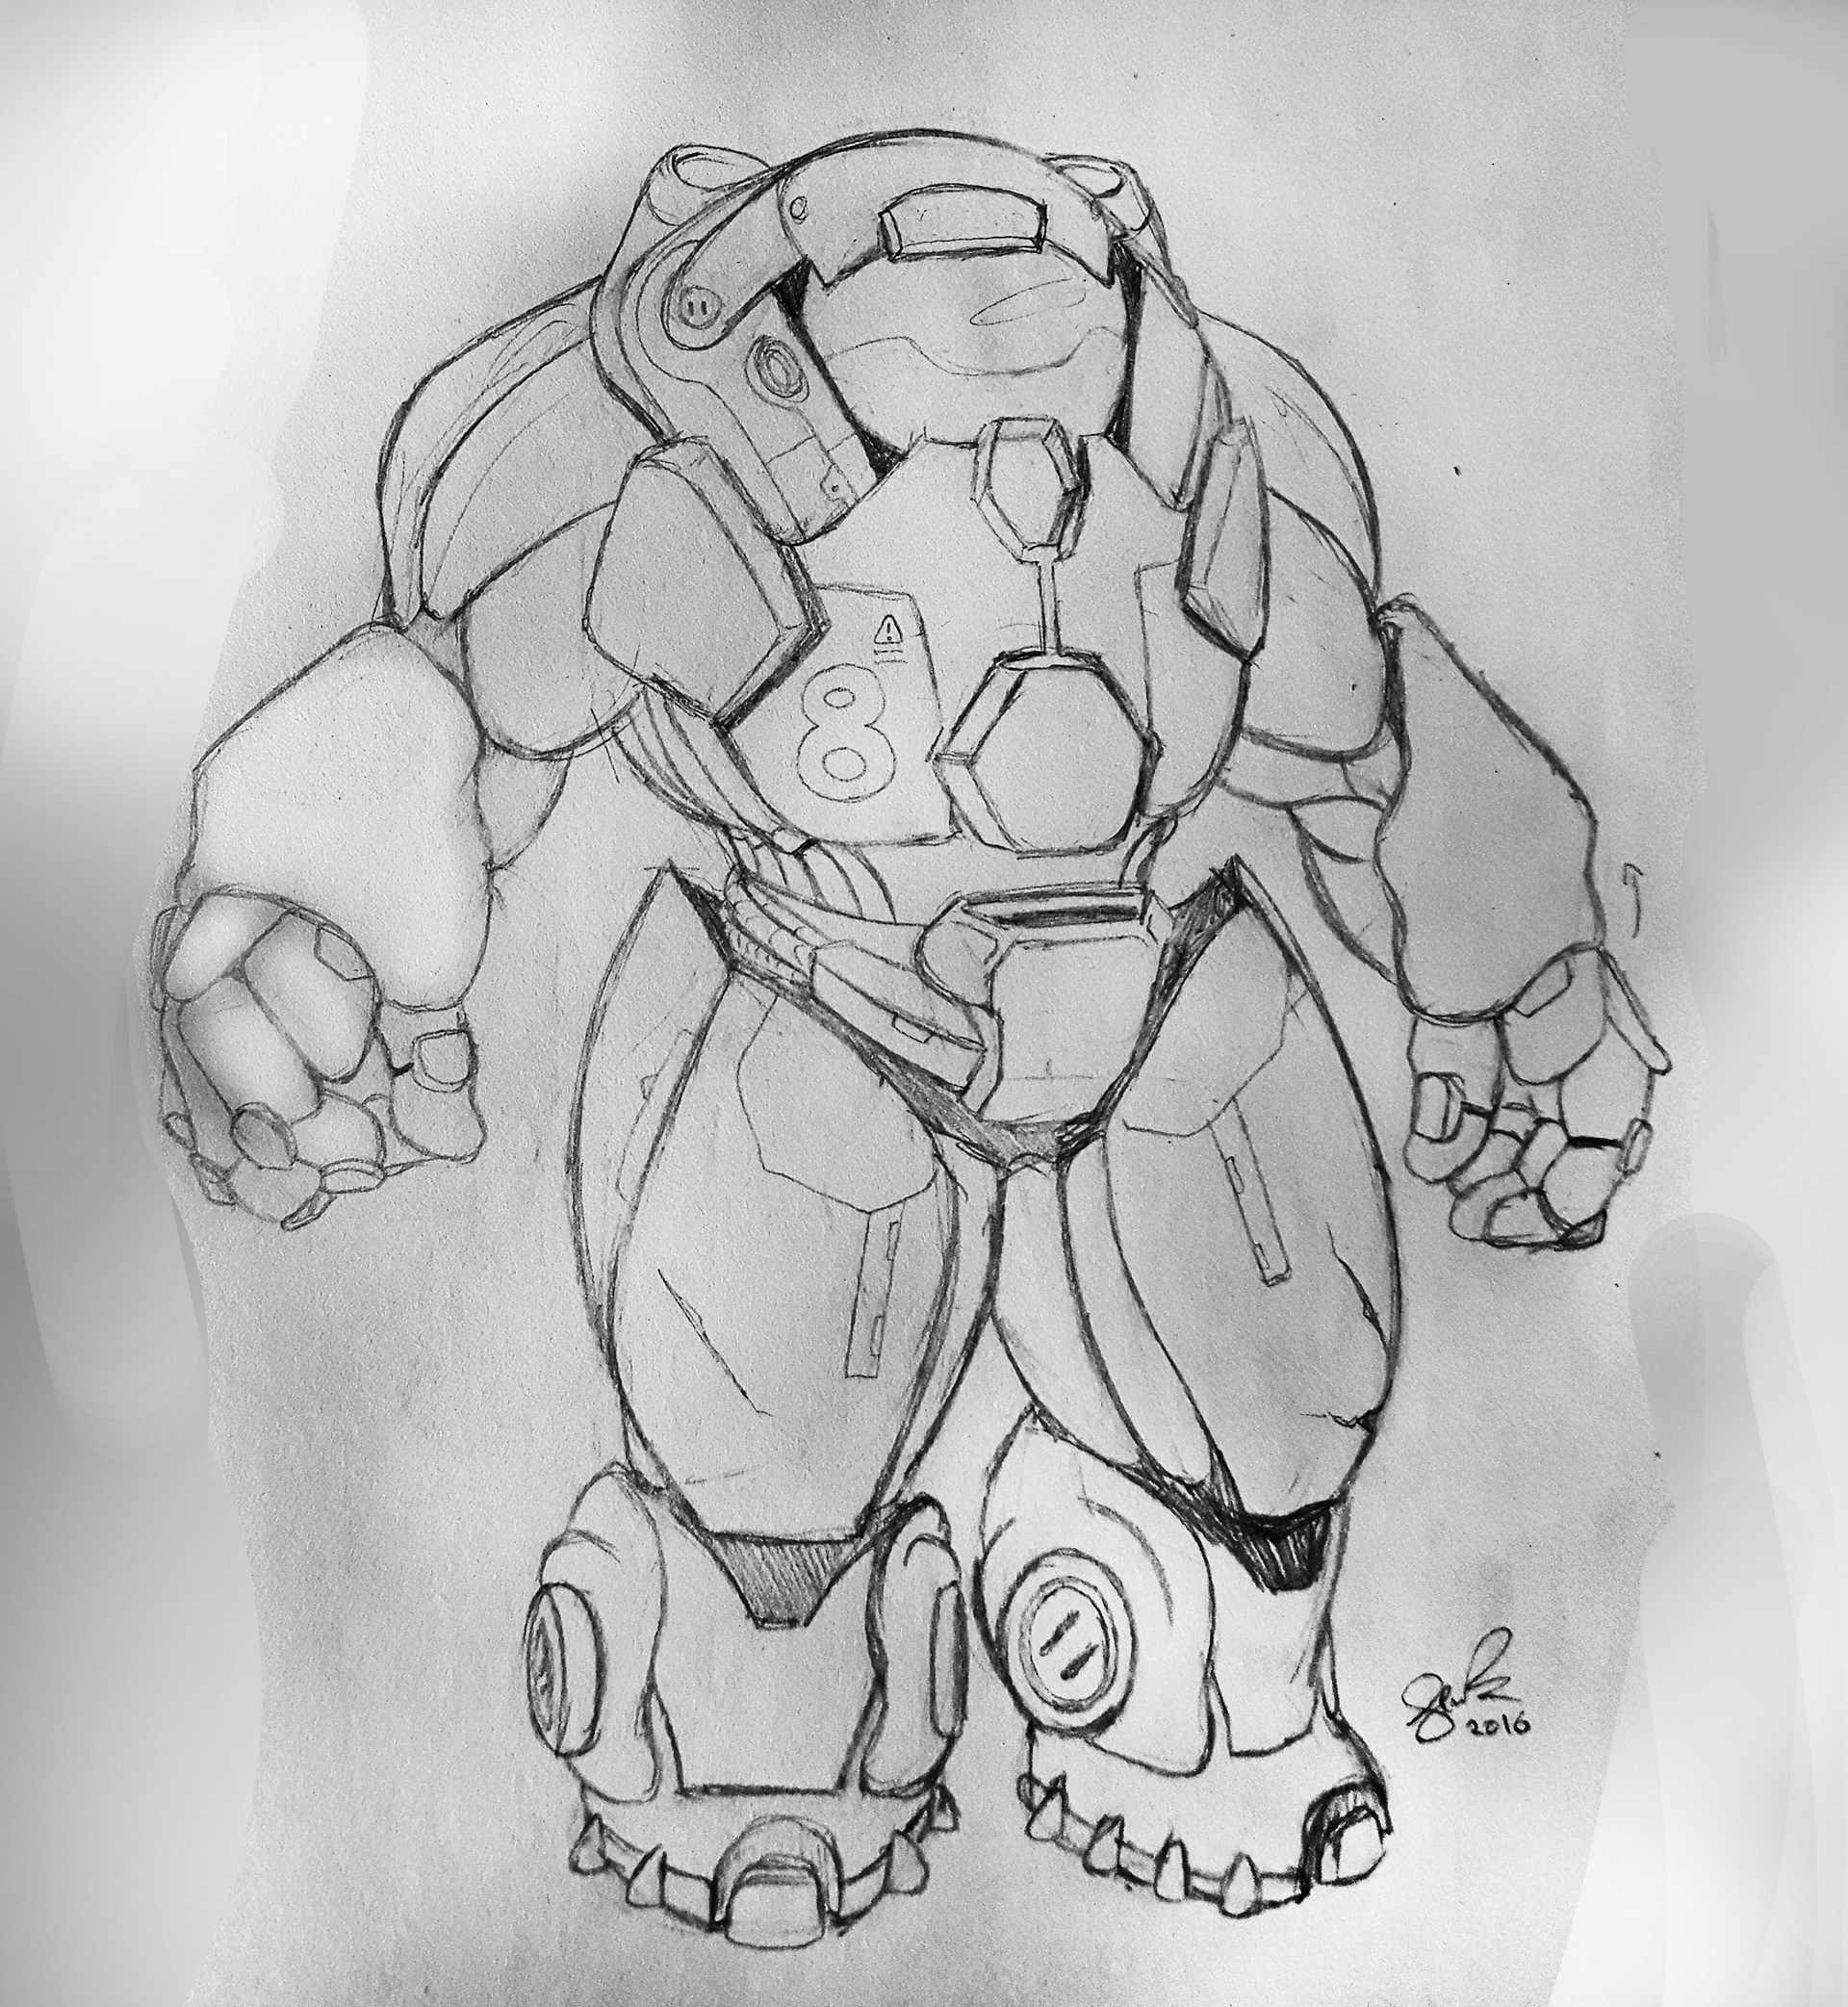 He started off as a pencil sketch inspired by baymax from disneys big hero 6 and blizzards heroes of the storm